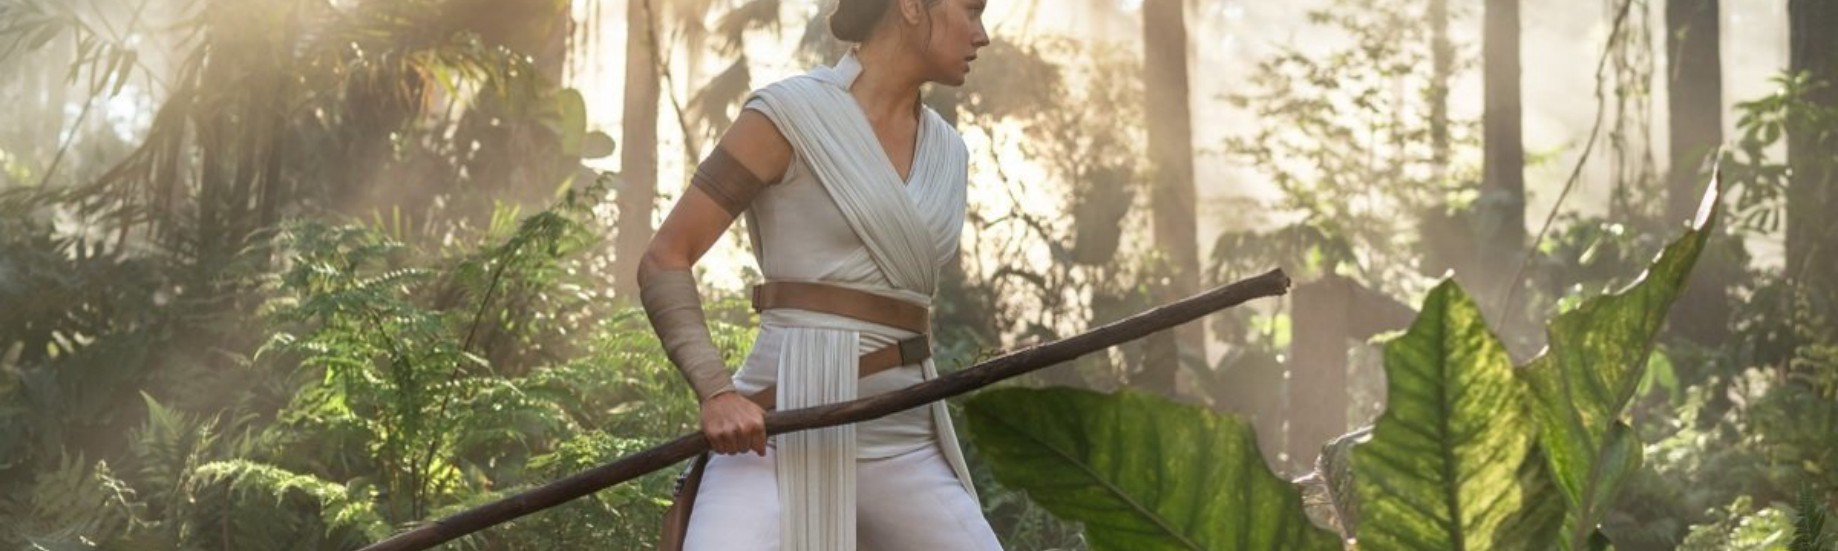 Star Wars The Rise Of Skywalker Is Bad Reddit Fanfiction And A Middle Finger To A 42 Year Old Legacy By Maxance Vincent Medium